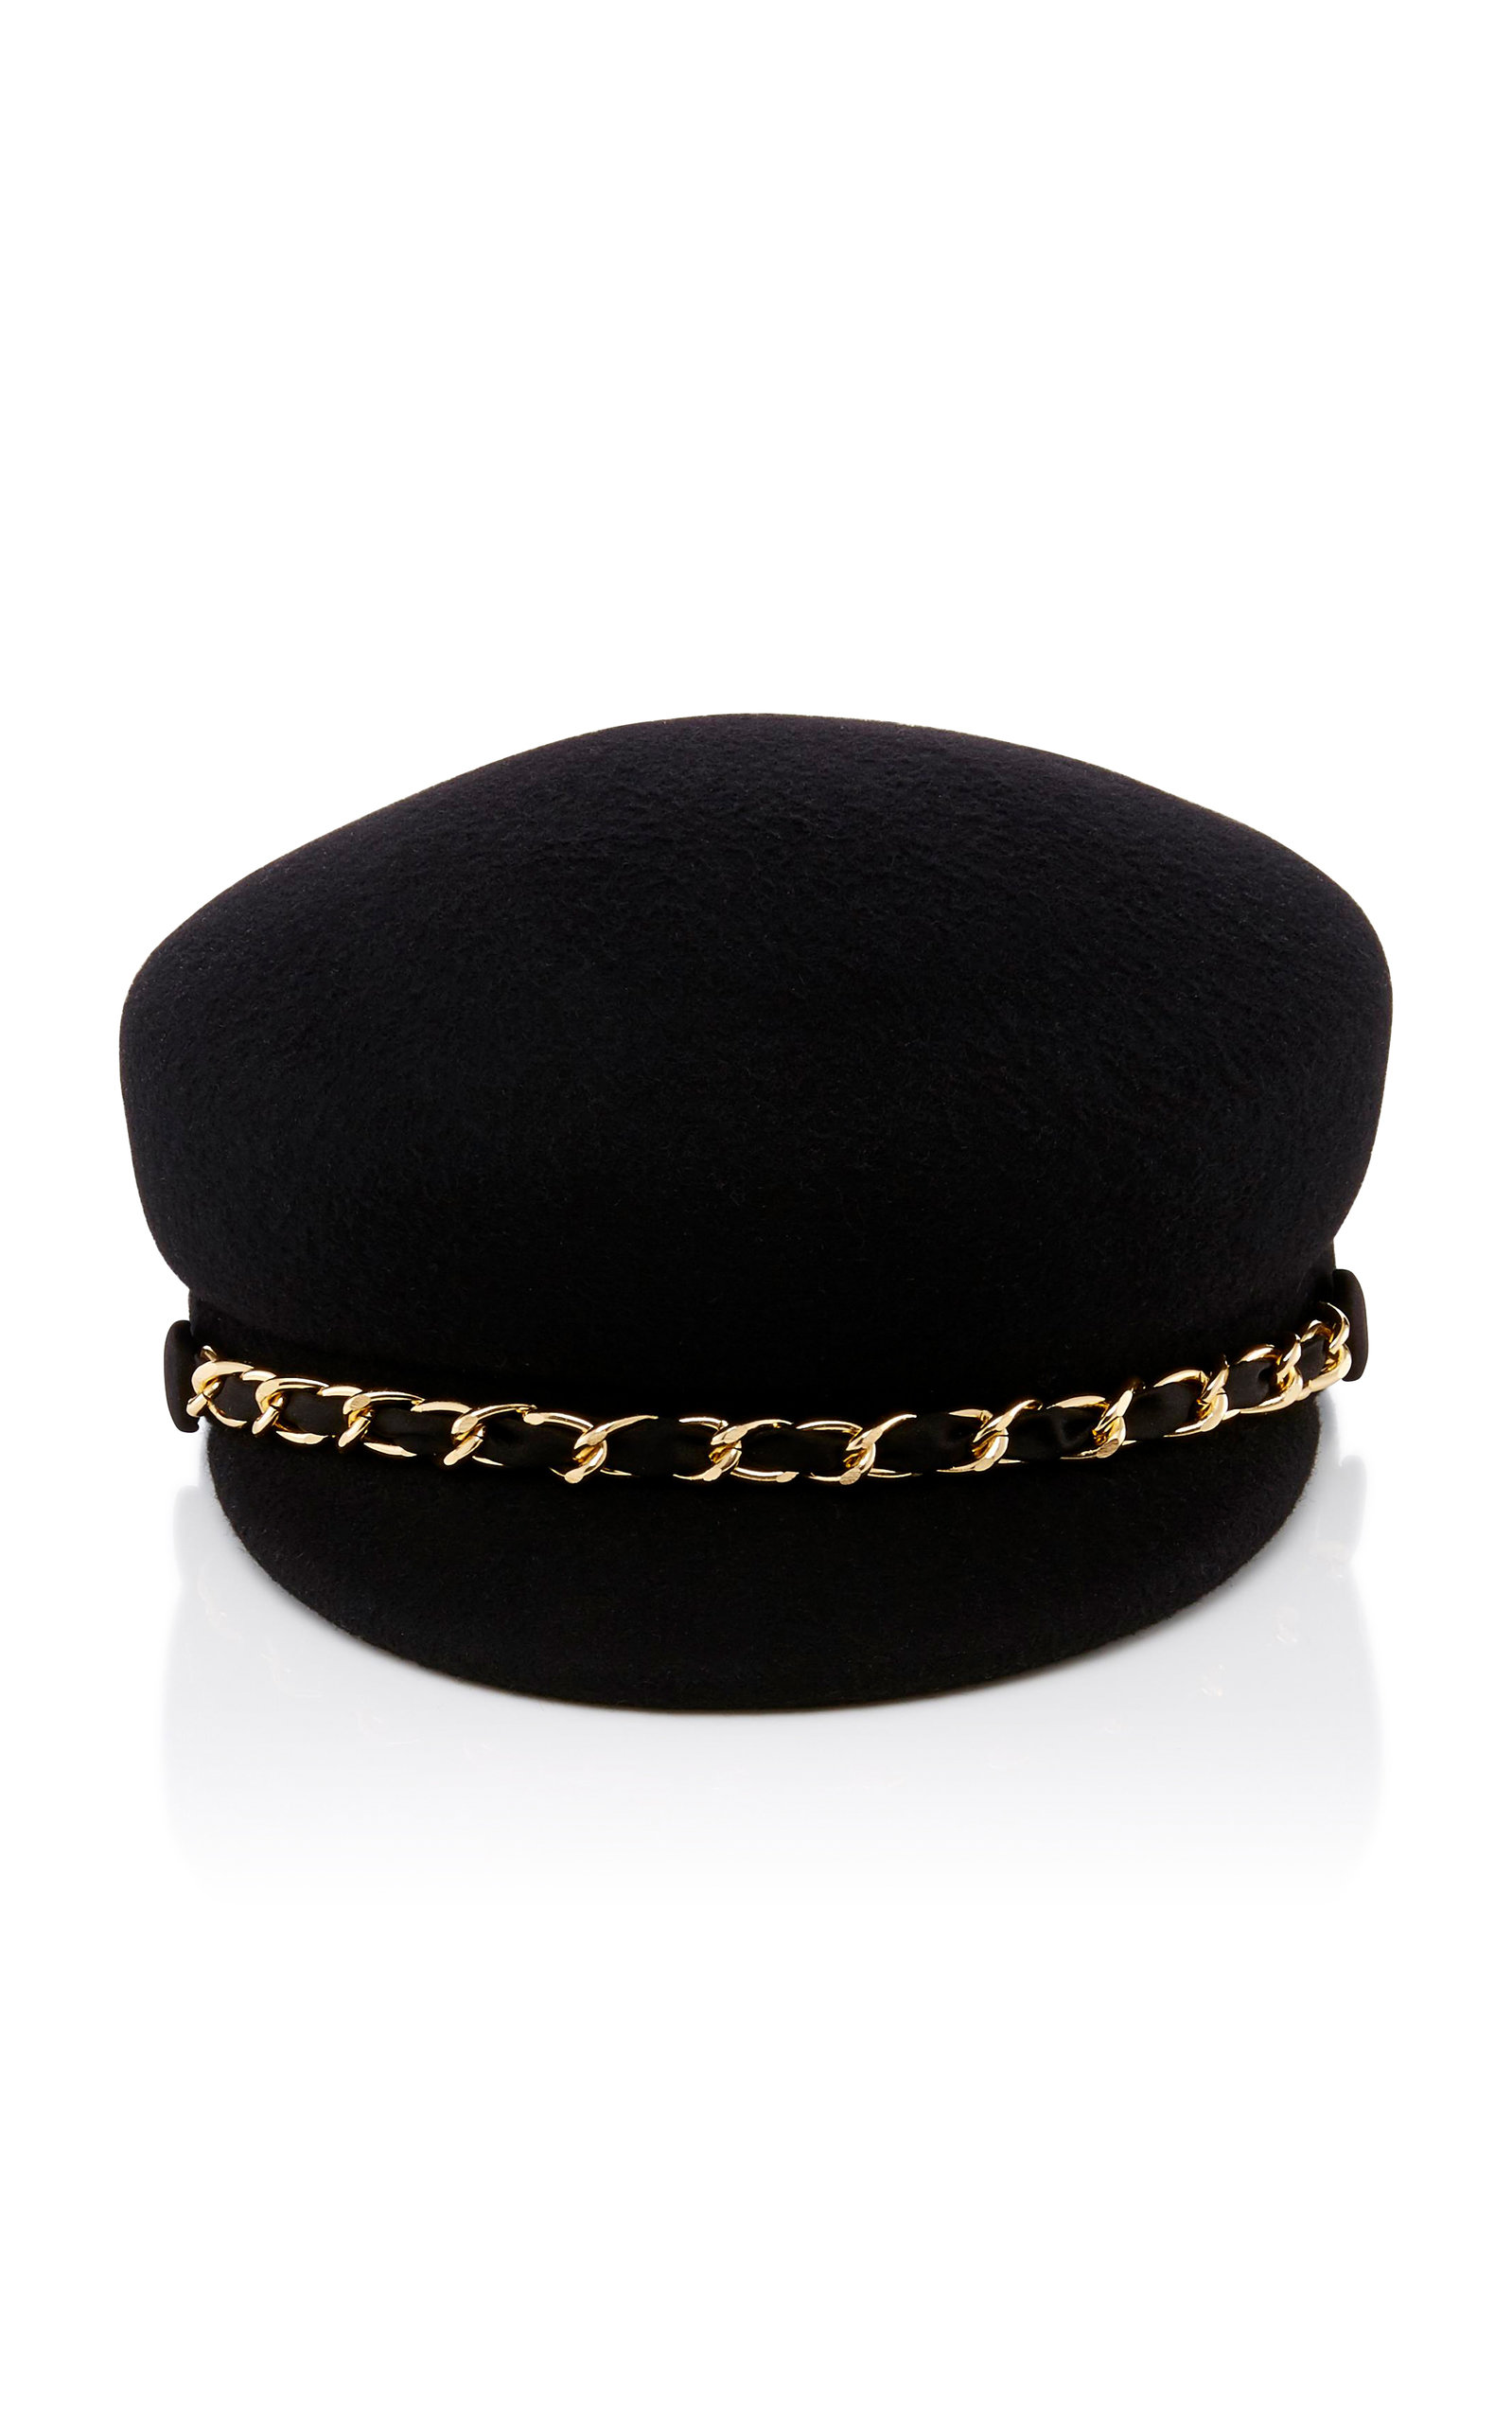 Sabrina Gold Chain Black Wool Felt Cap Eugenia Kim